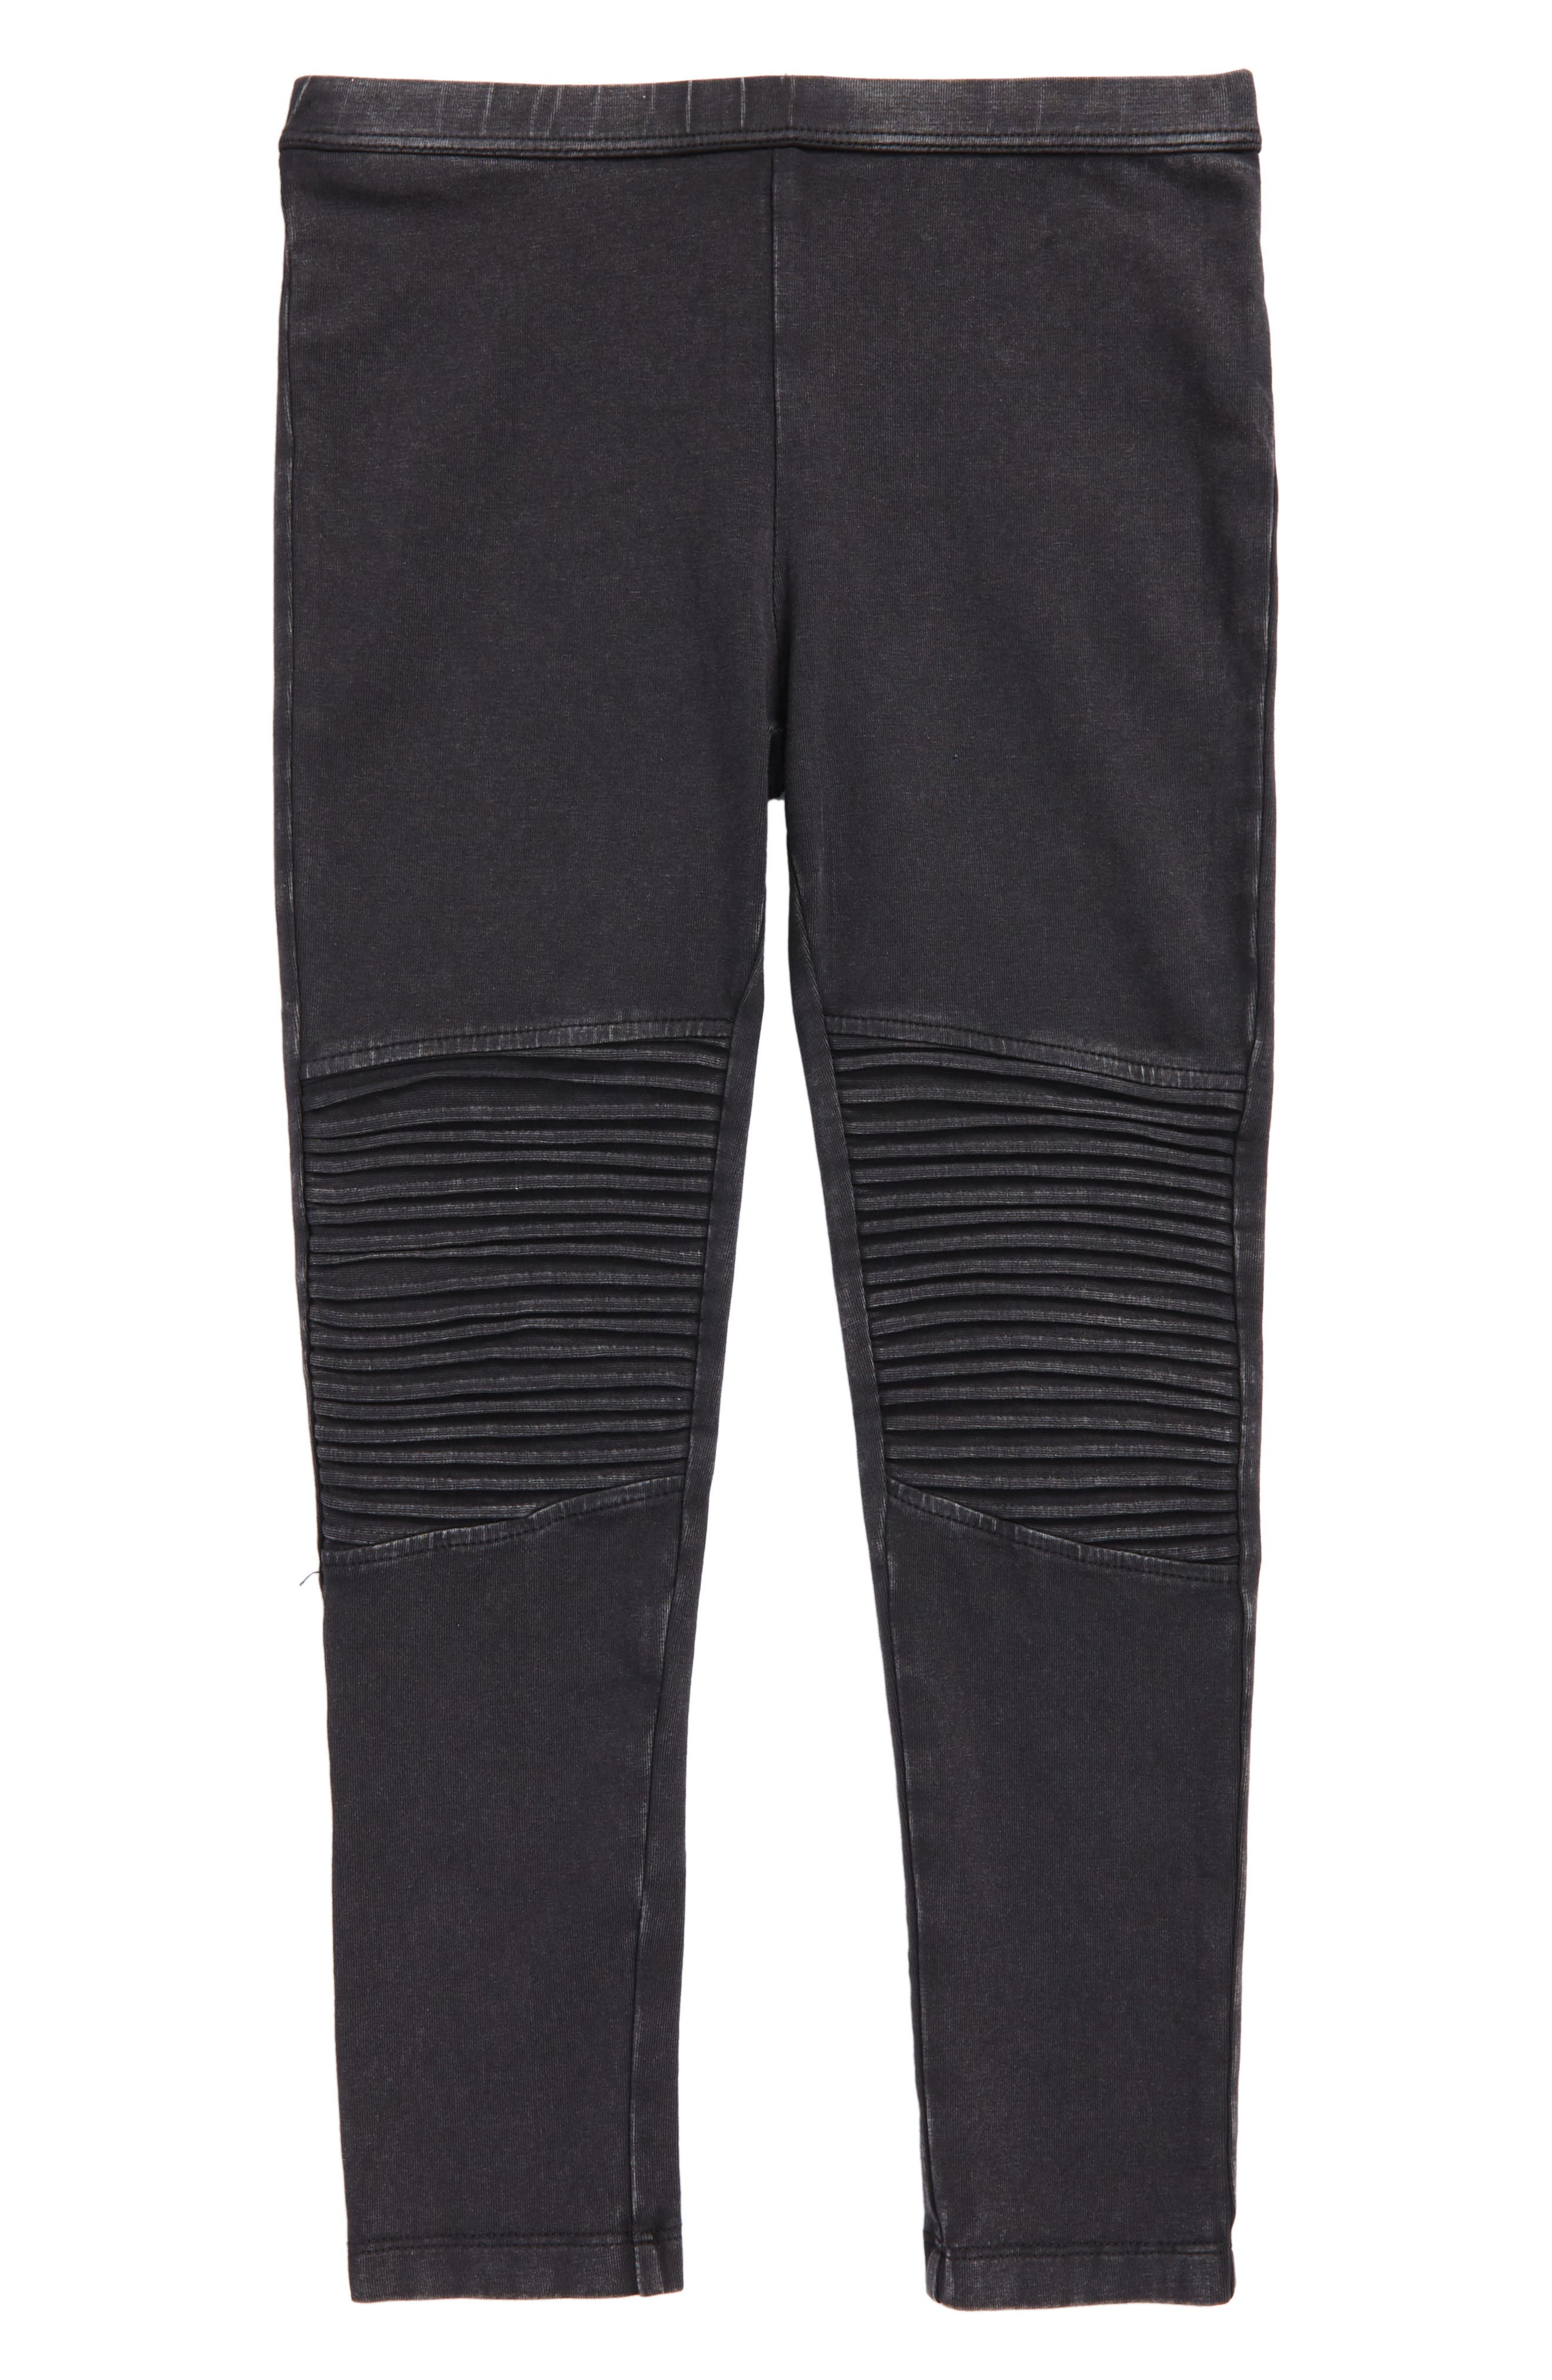 Moto Leggings,                             Main thumbnail 1, color,